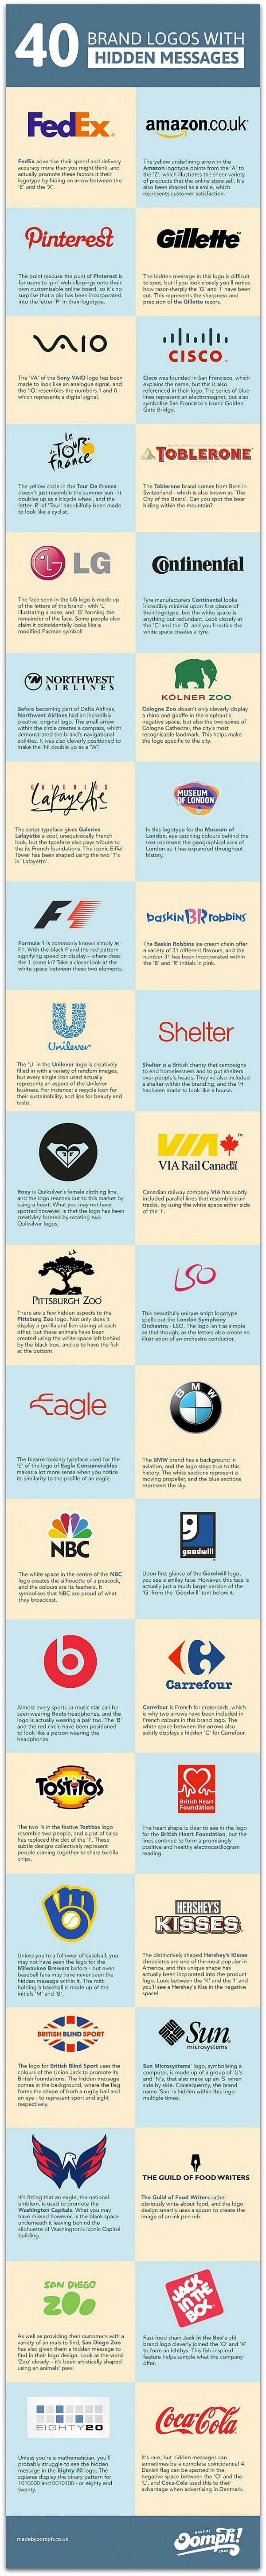 Subliminal_Messages_in_Brand_Logos_Infographic 1.jpg